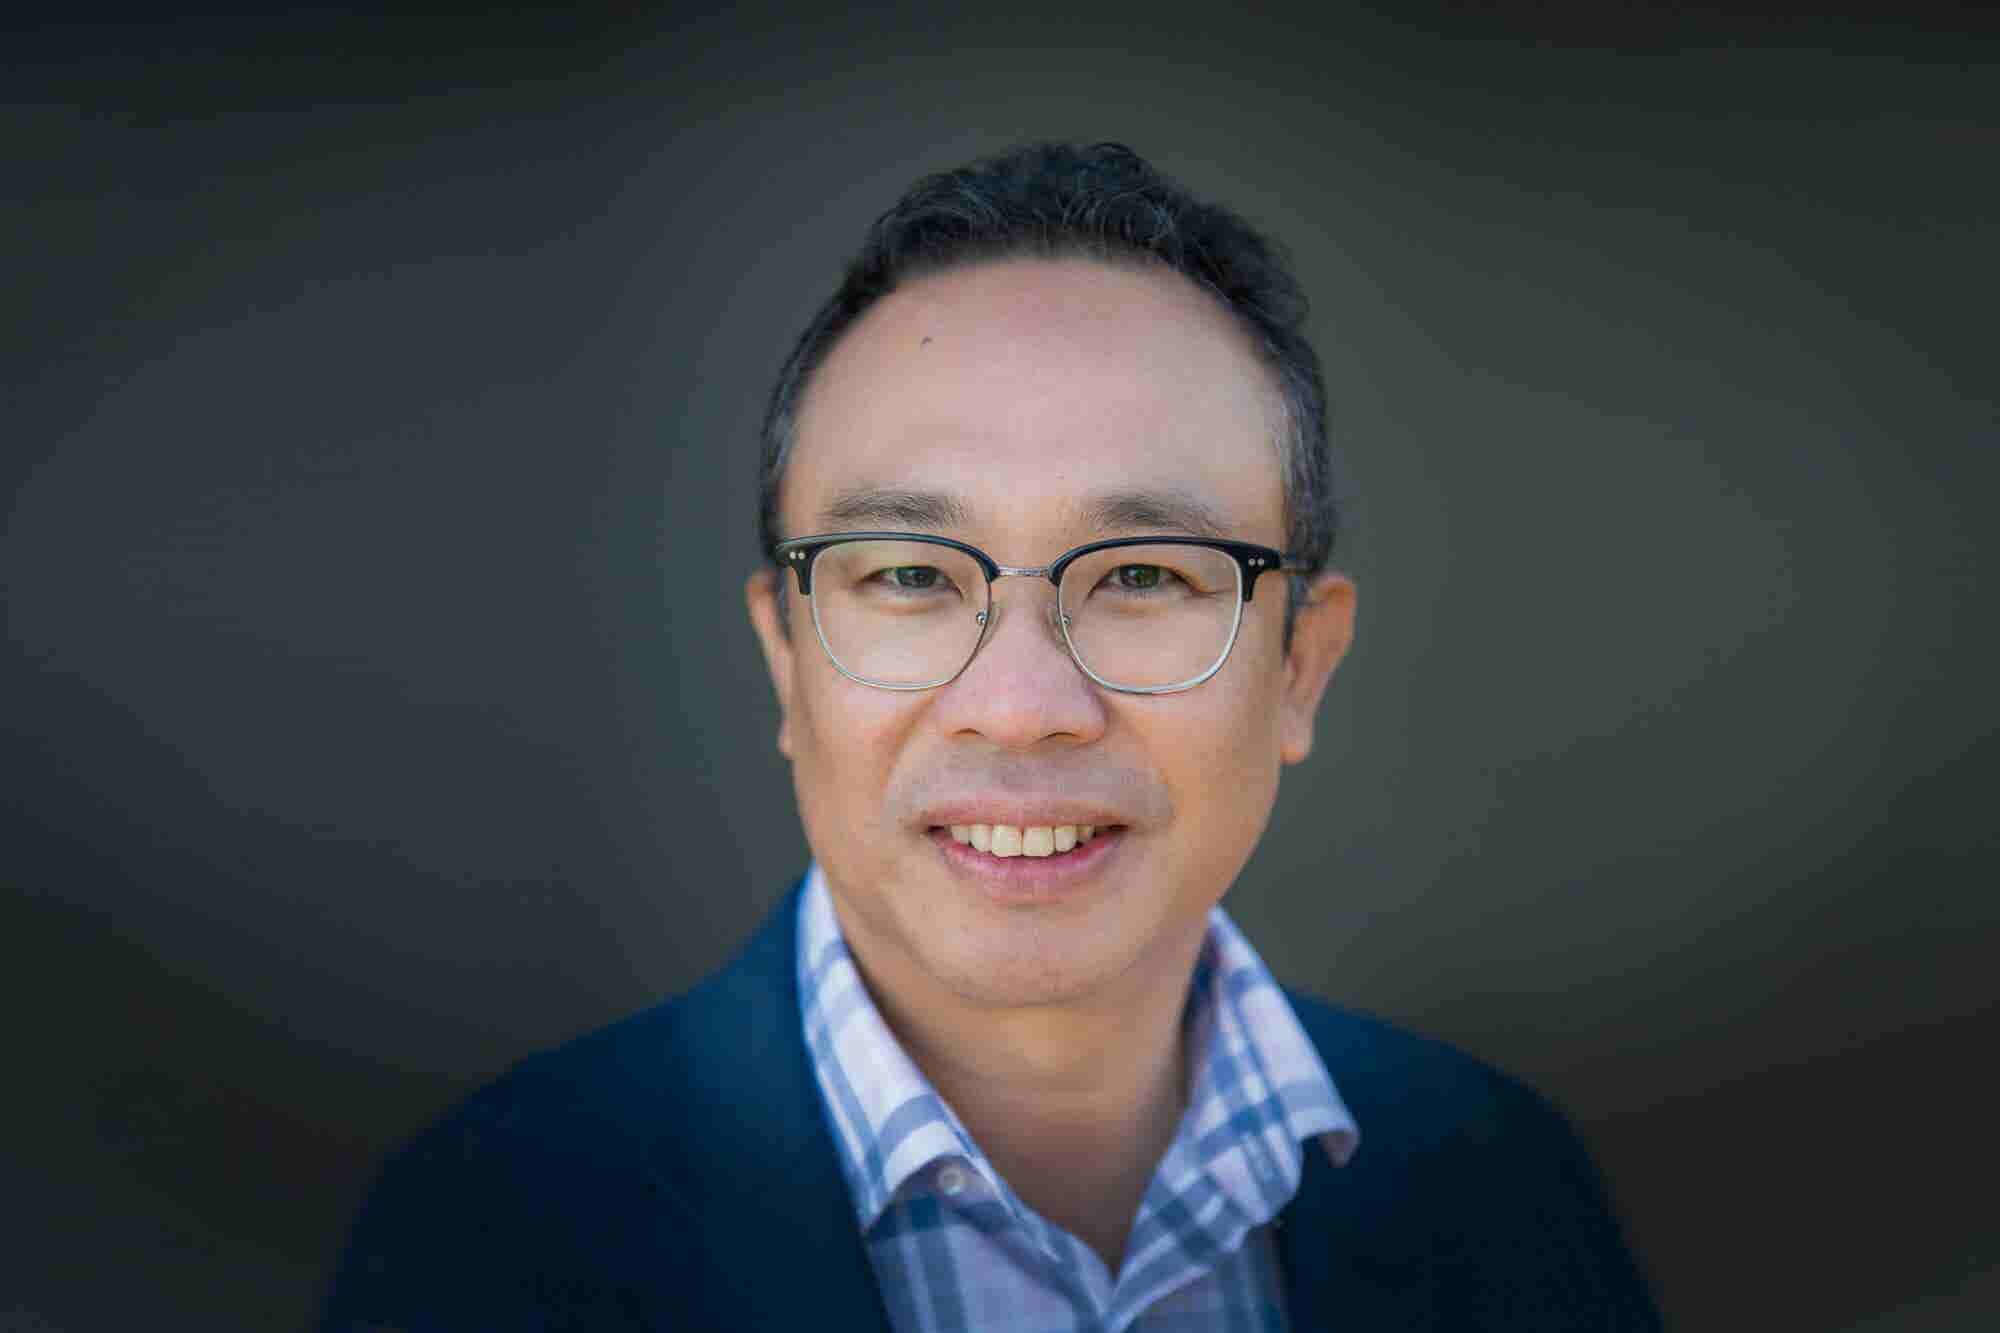 After Fleeing Vietnam at 20, This Entrepreneur Built A Thriving Education Franchise